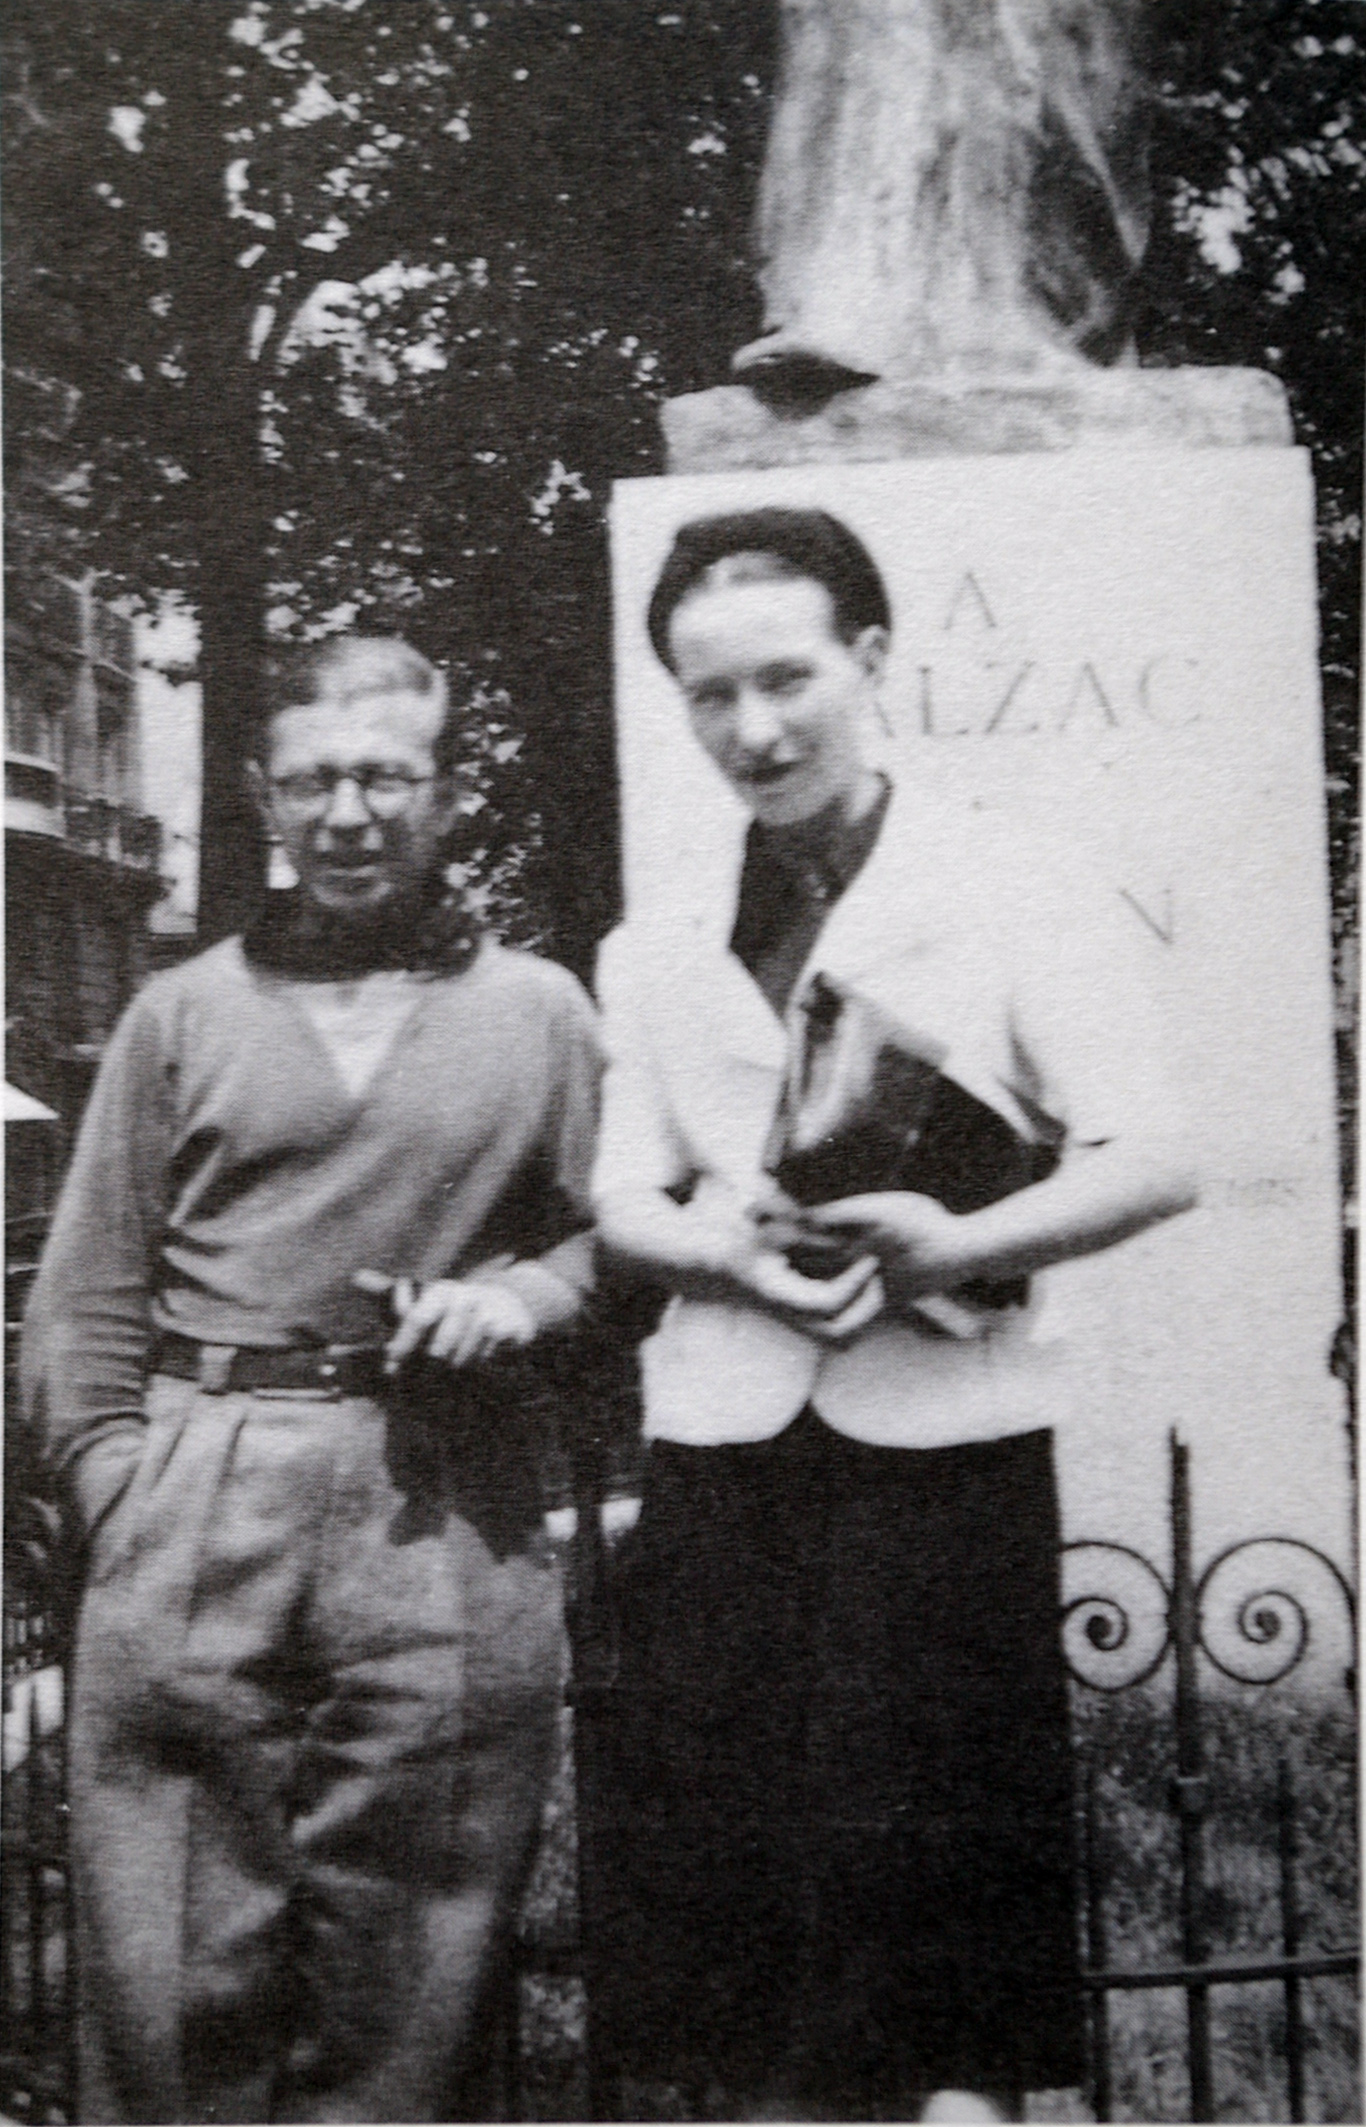 Jeanpaul Sartre  Wikipedia Jeanpaul Sartre And Simone De Beauvoir At The Balzac Memorial